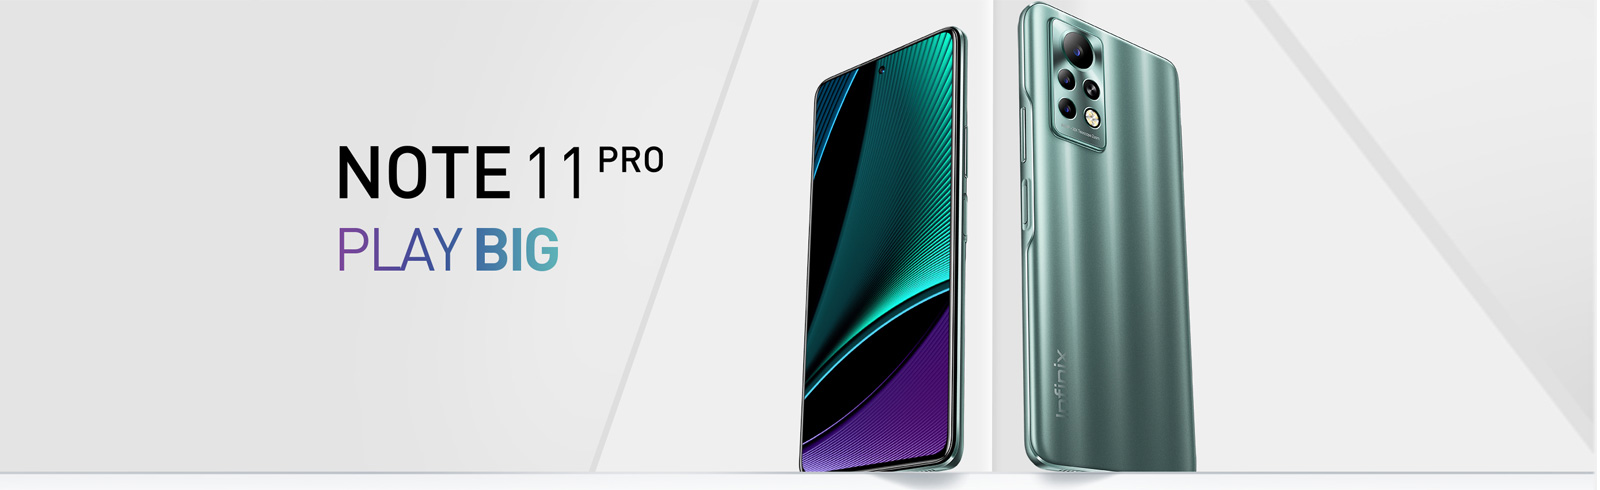 """Infinix Note 11 Pro goes official with a Helio G96 chipset, 6.95"""" FHD+ 120Hz display, 33 fast charging"""